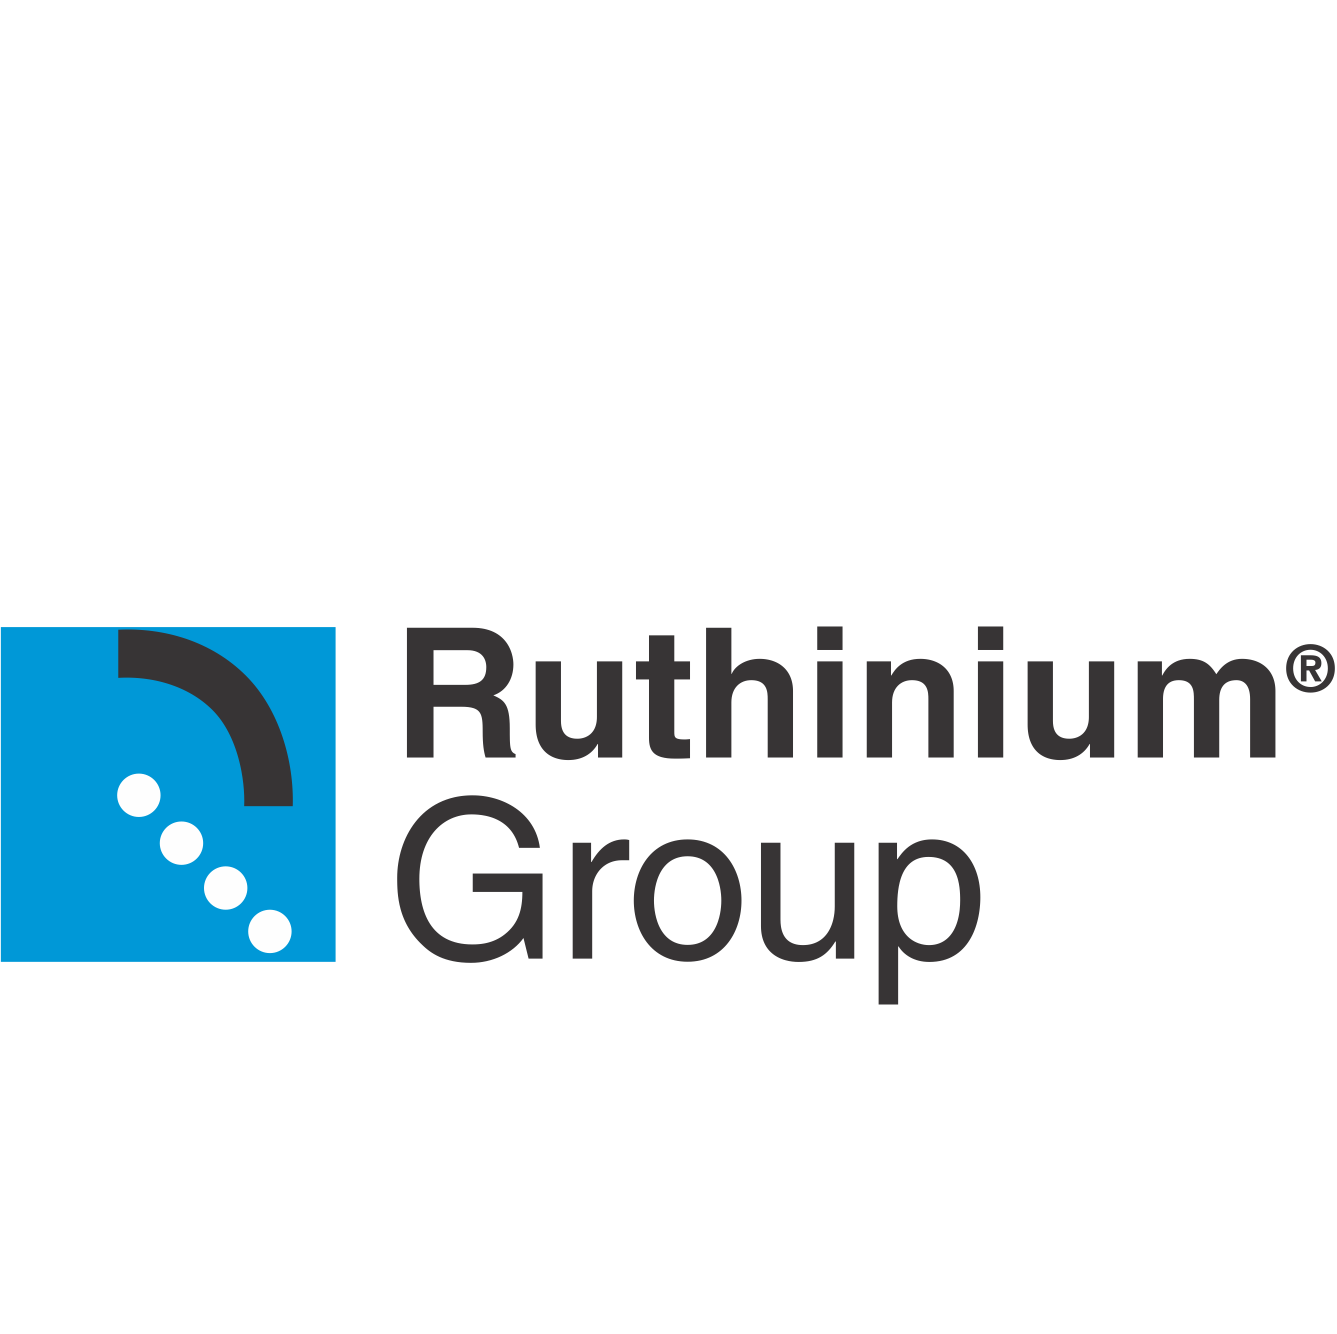 ruthinium-group.png